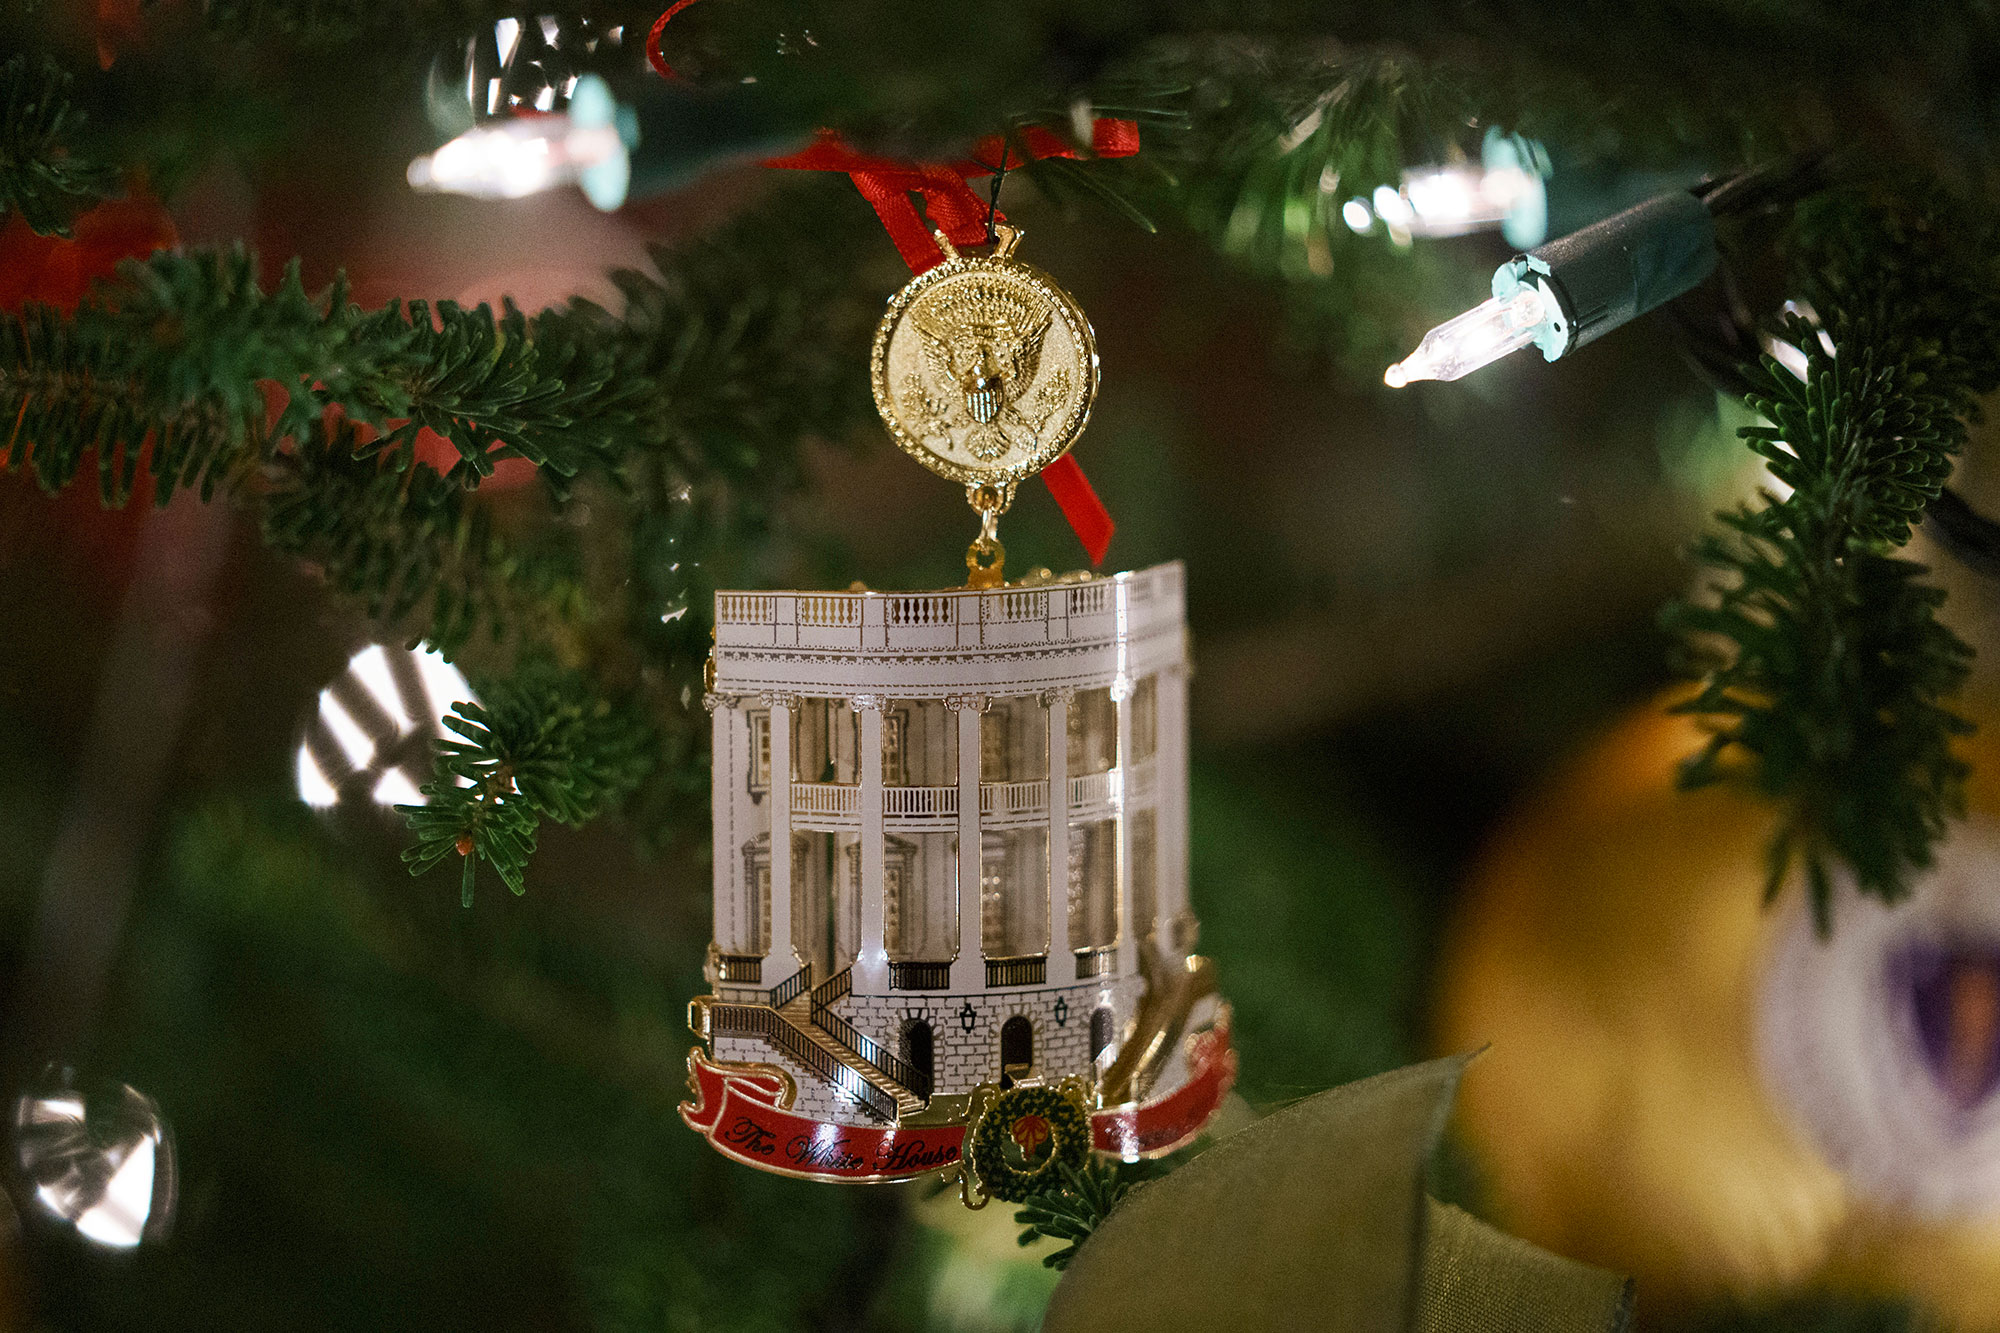 <div class='meta'><div class='origin-logo' data-origin='none'></div><span class='caption-text' data-credit='Carolyn Kaster/AP Photo'>The Official 2018 White House Christmas Ornament is seen during the 2018 Christmas Press Preview at the White House in Washington, Monday, Nov. 26, 2018.</span></div>